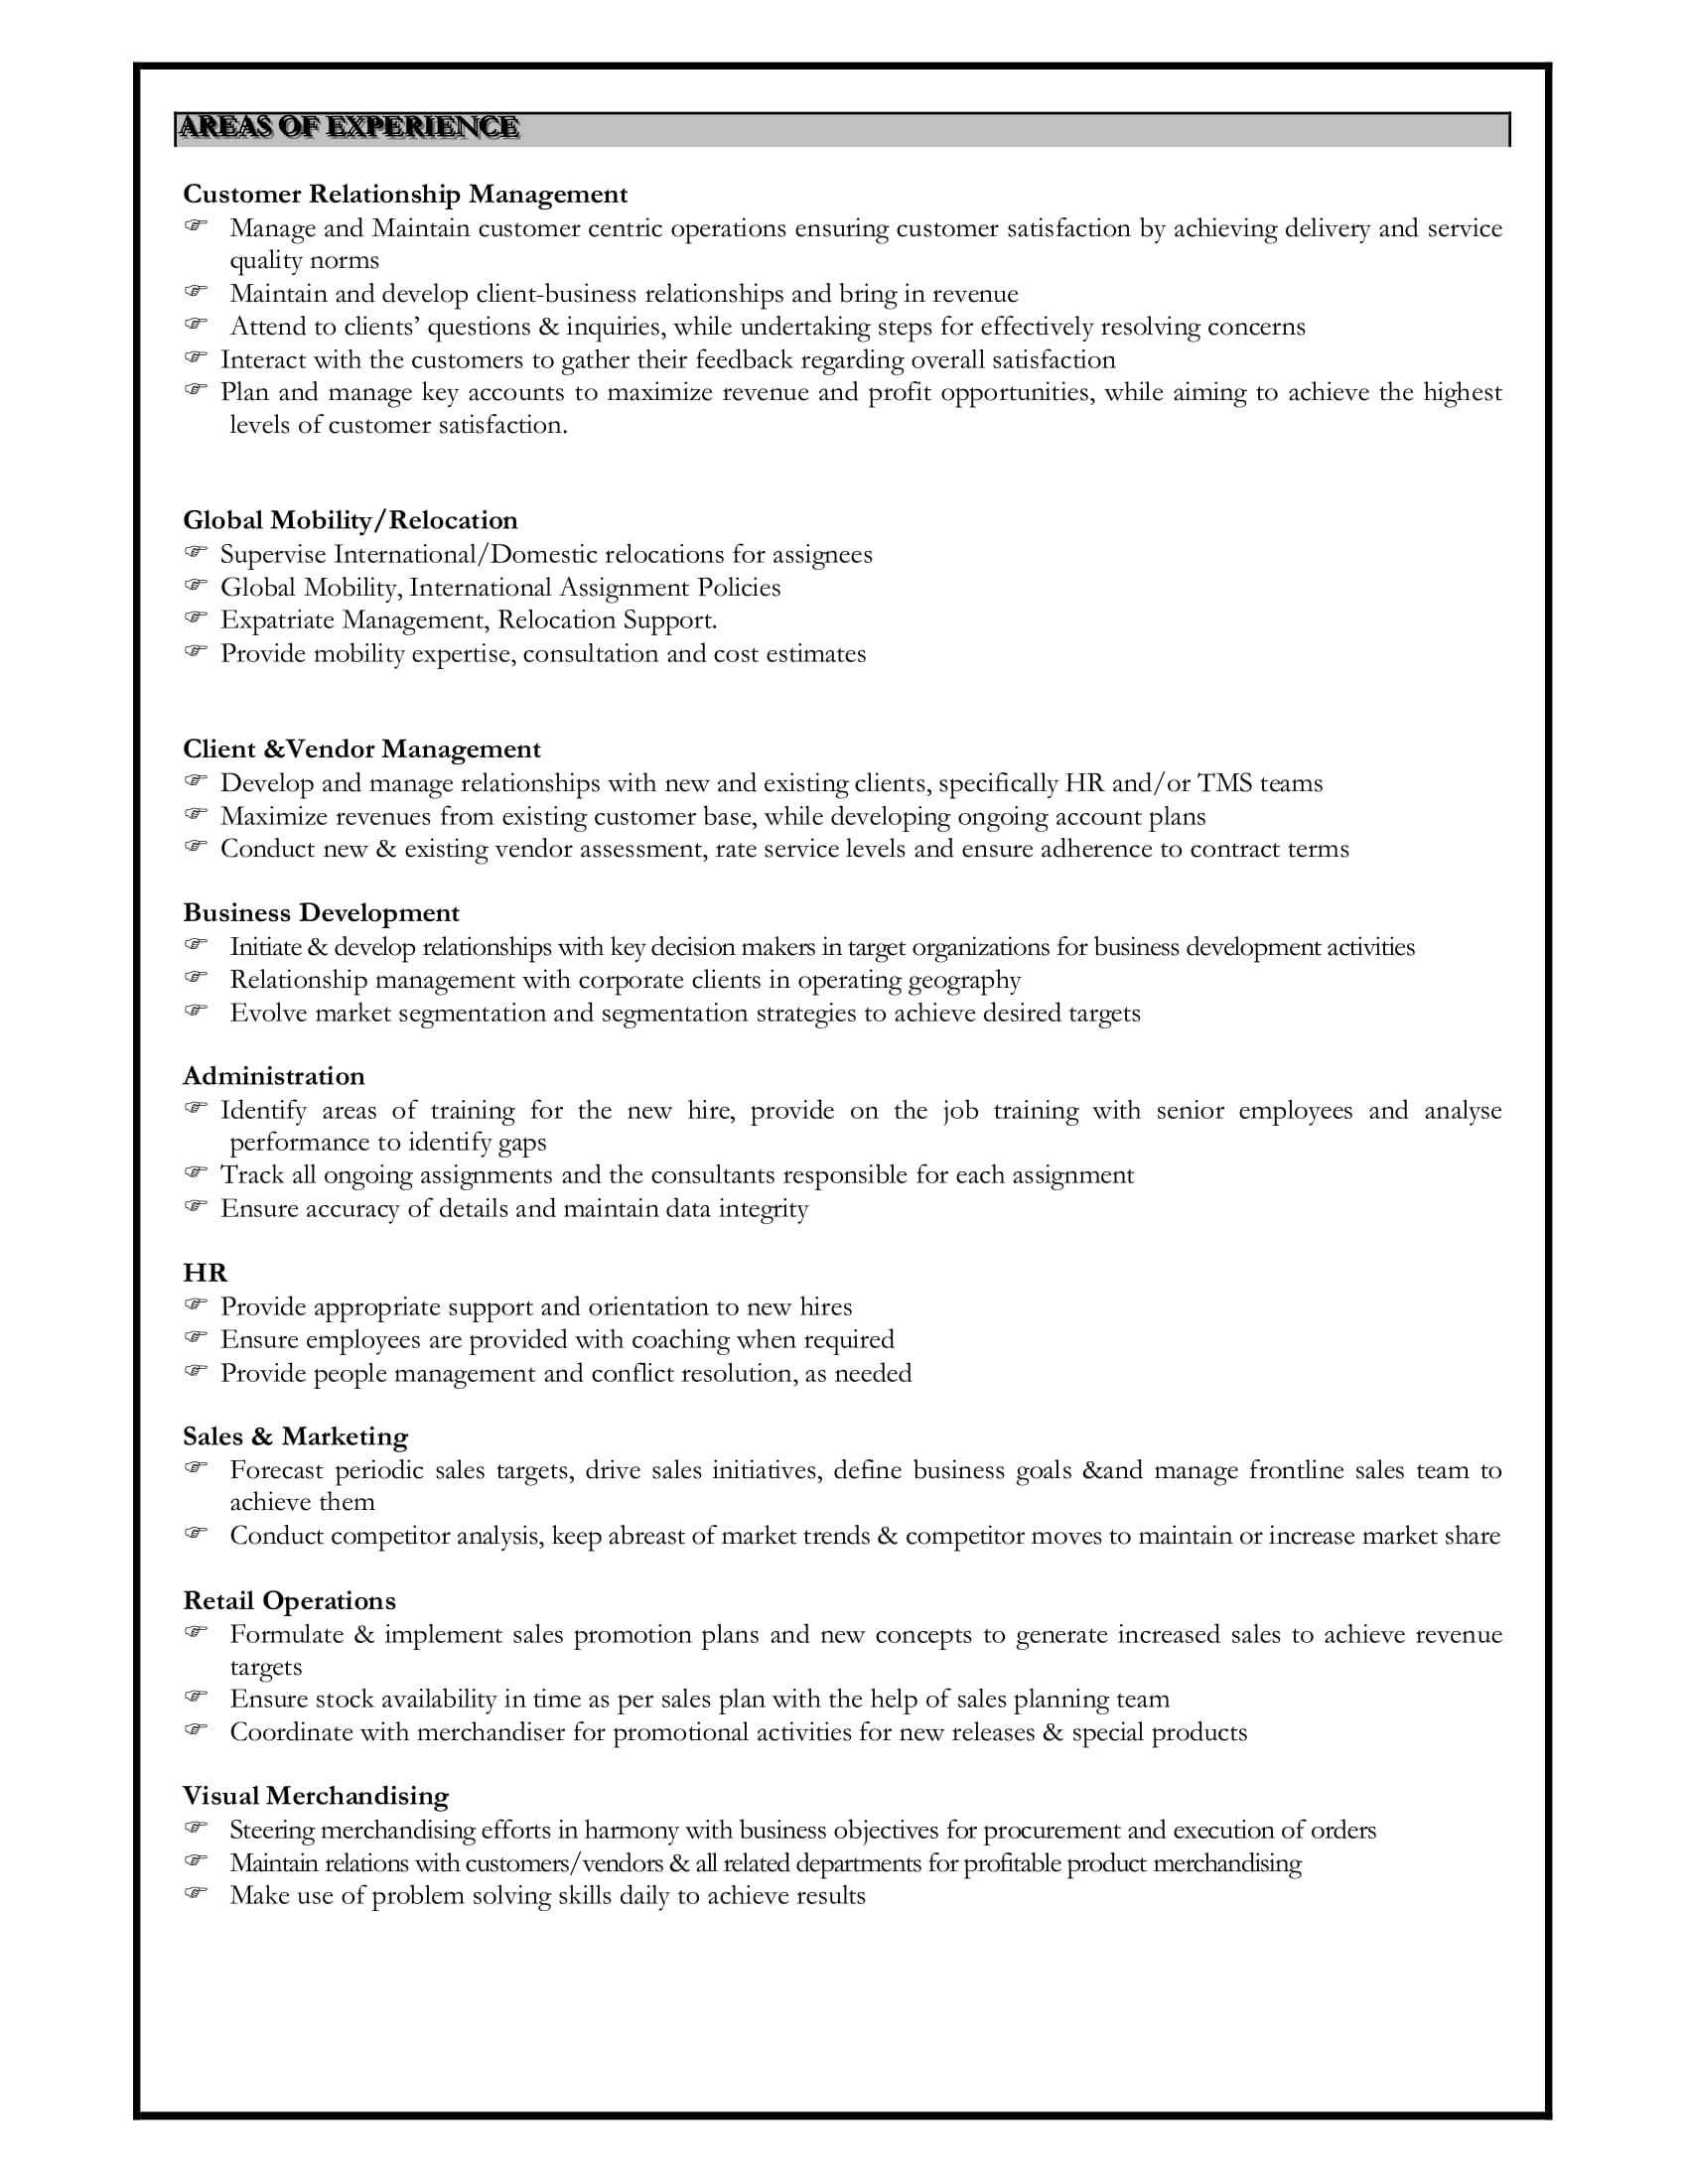 Resume Skills Section 2018 Guide On Skills For Resume 50 Examples